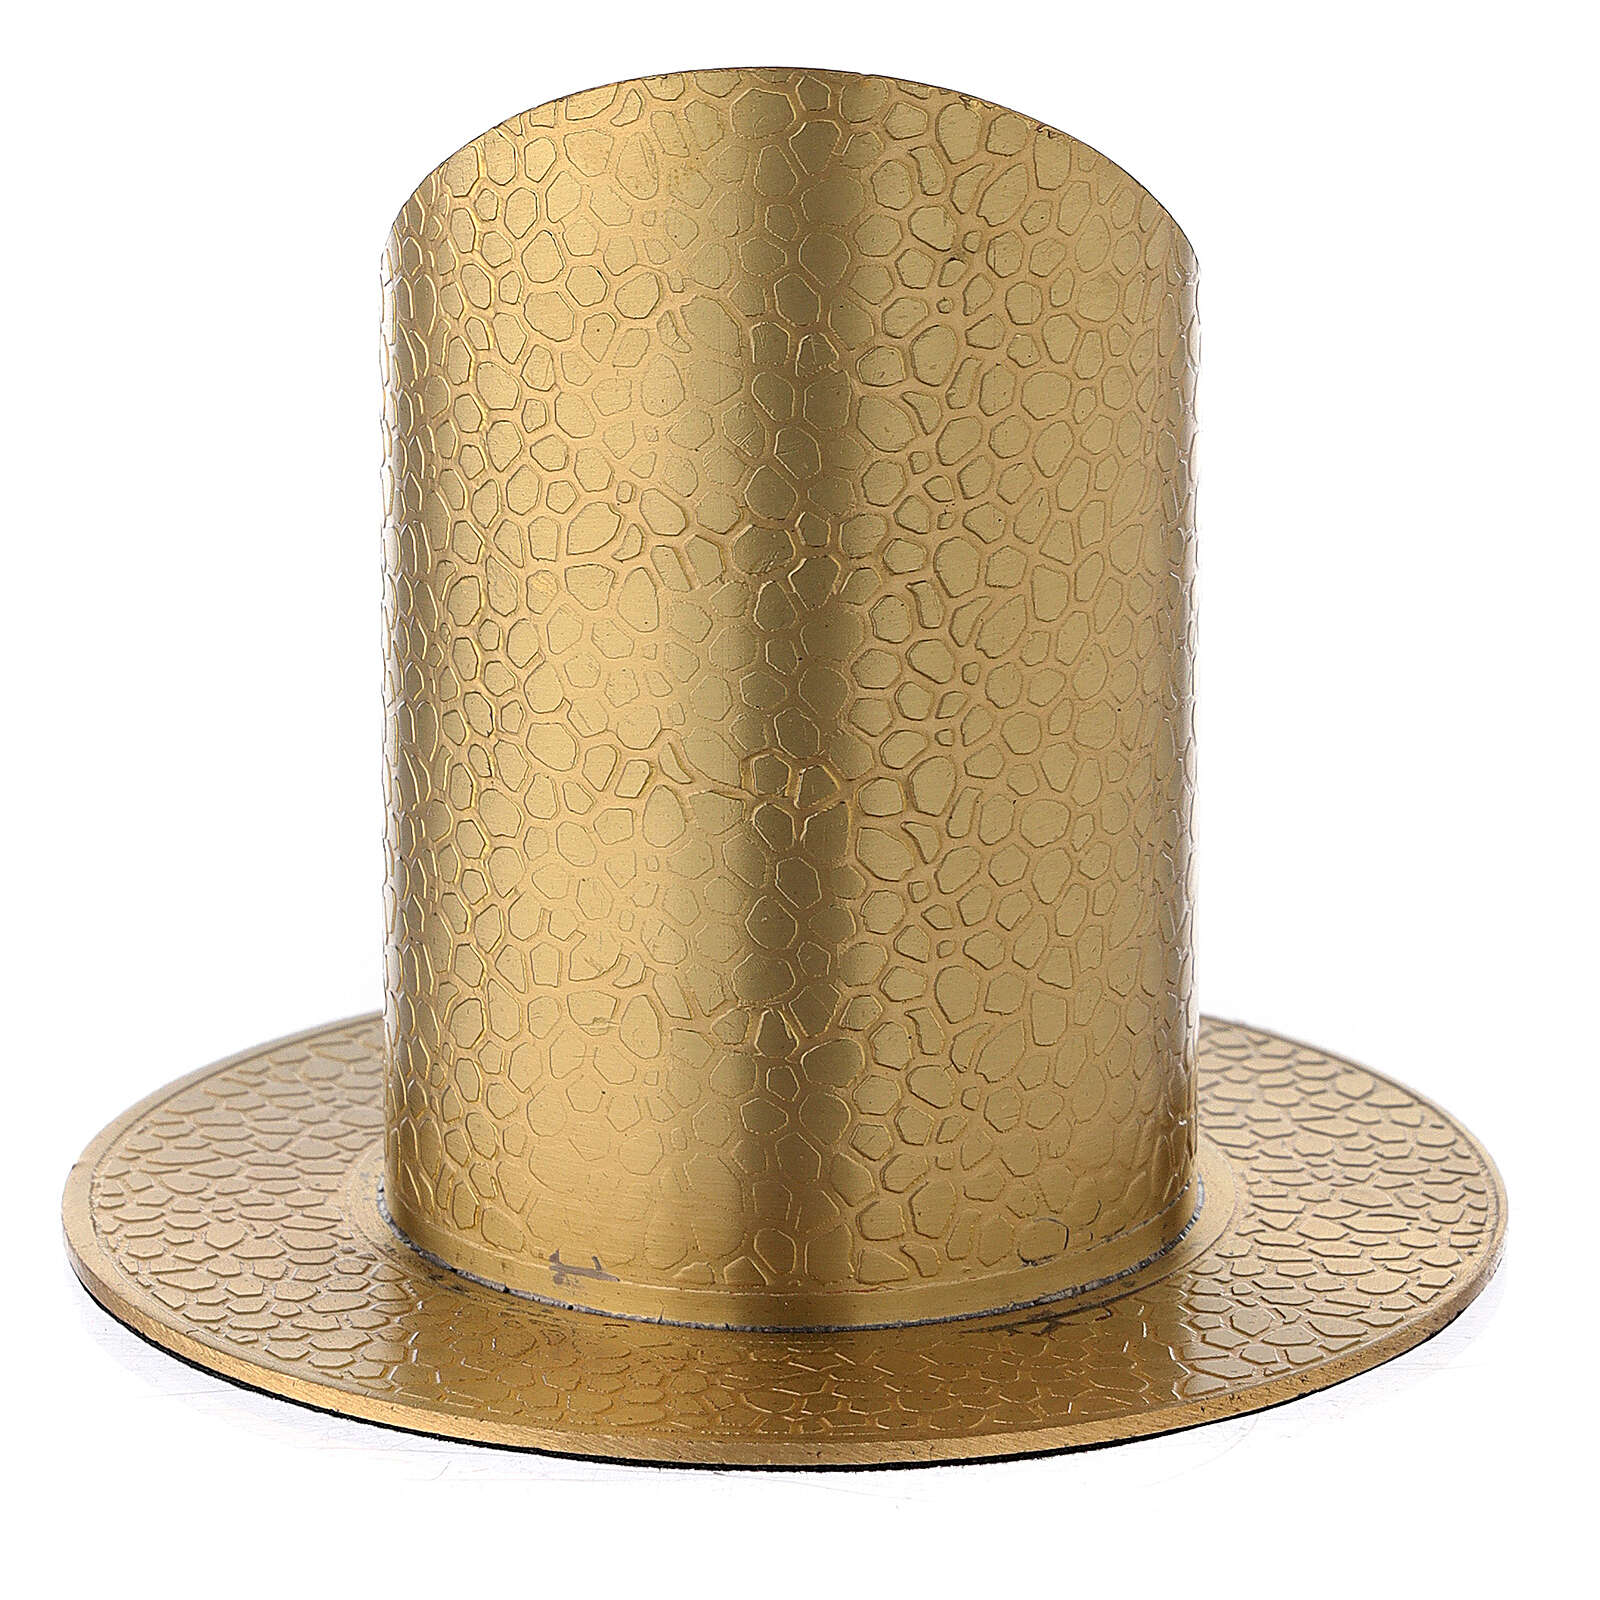 Gold plated brass candle holder with leather finish 2 in 3